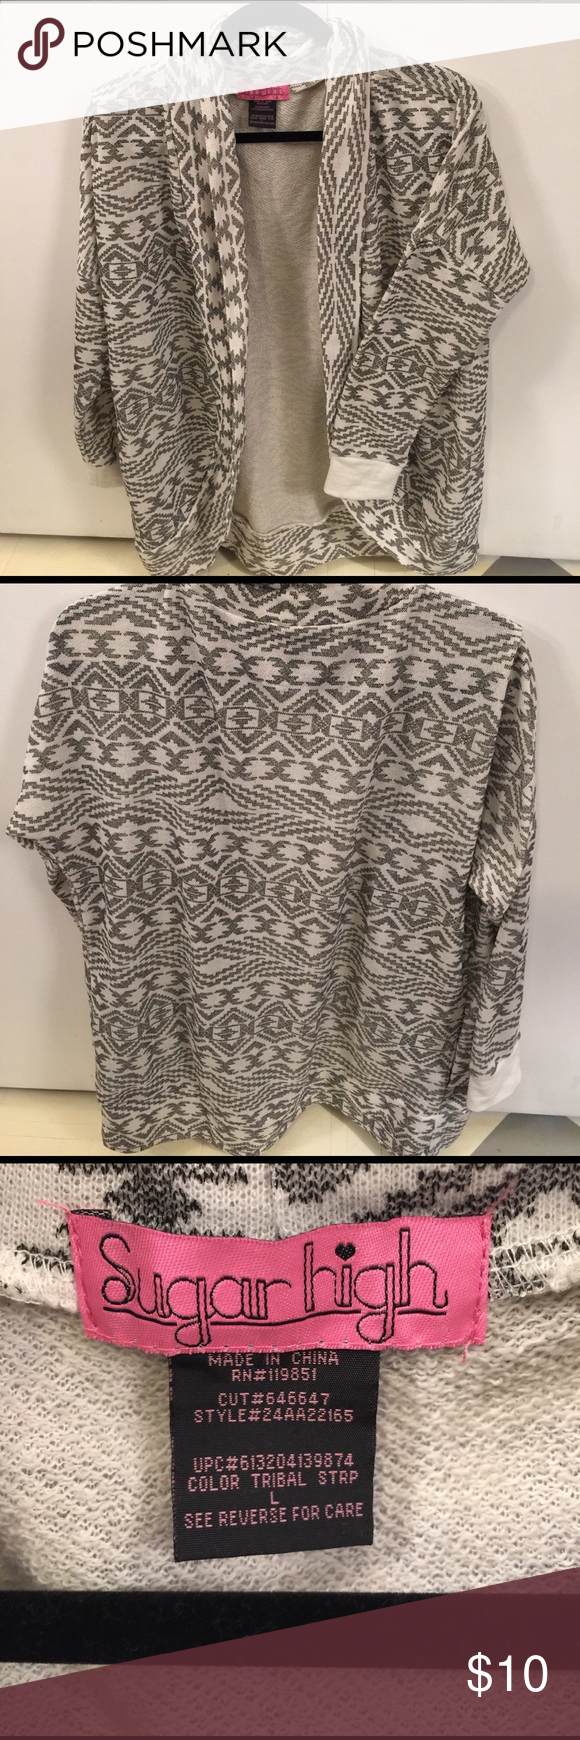 Aztec cardigan Sugar High gray/white aztec print cardigan. Never been worn. Just too small on me. Really cute with jeans/leggings. Sugar High Sweaters Cardigans